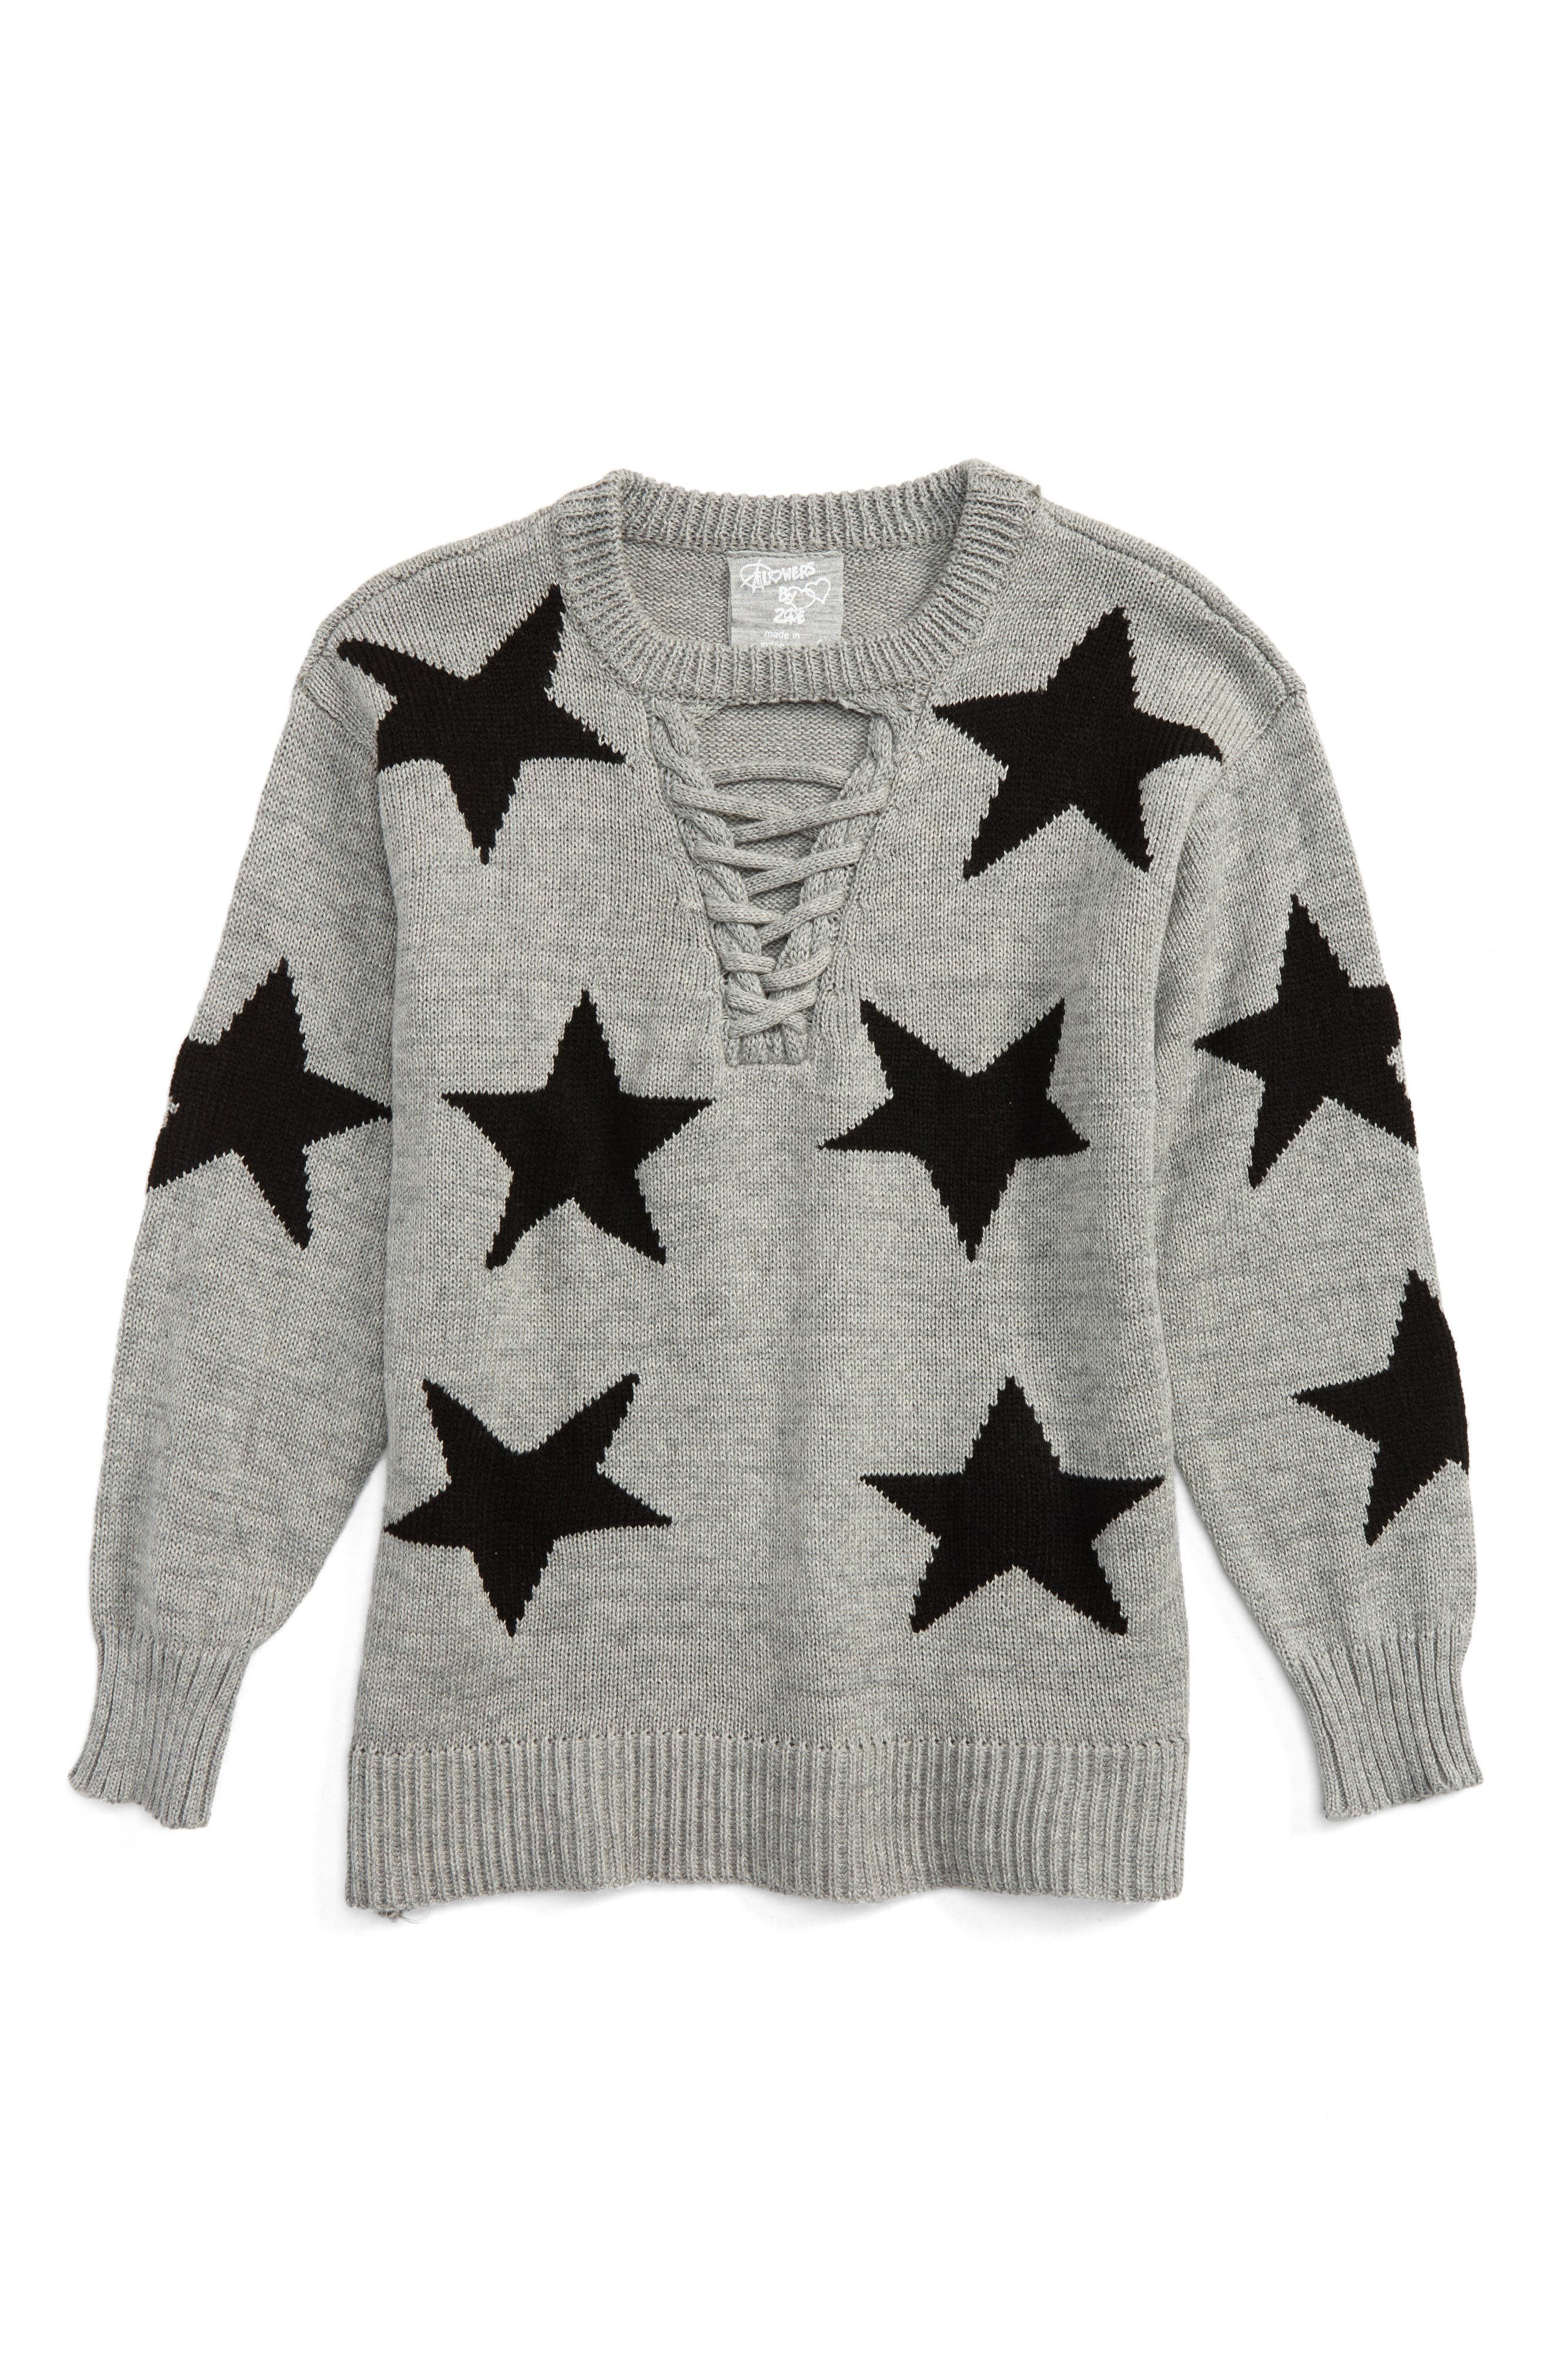 Star Lace-Up Sweater,                         Main,                         color, Grey/ Black